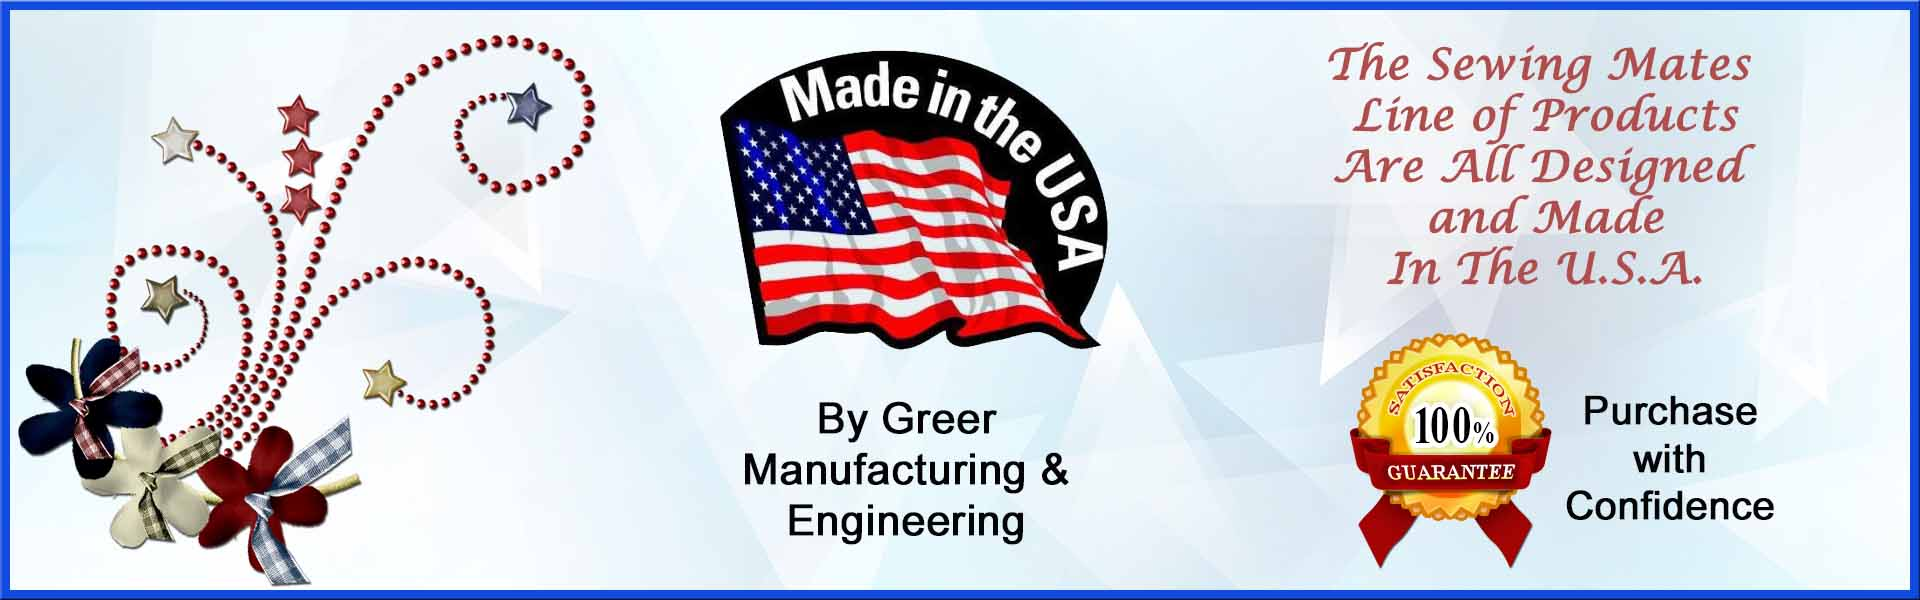 Made in the USA Satisfaction Guarantee